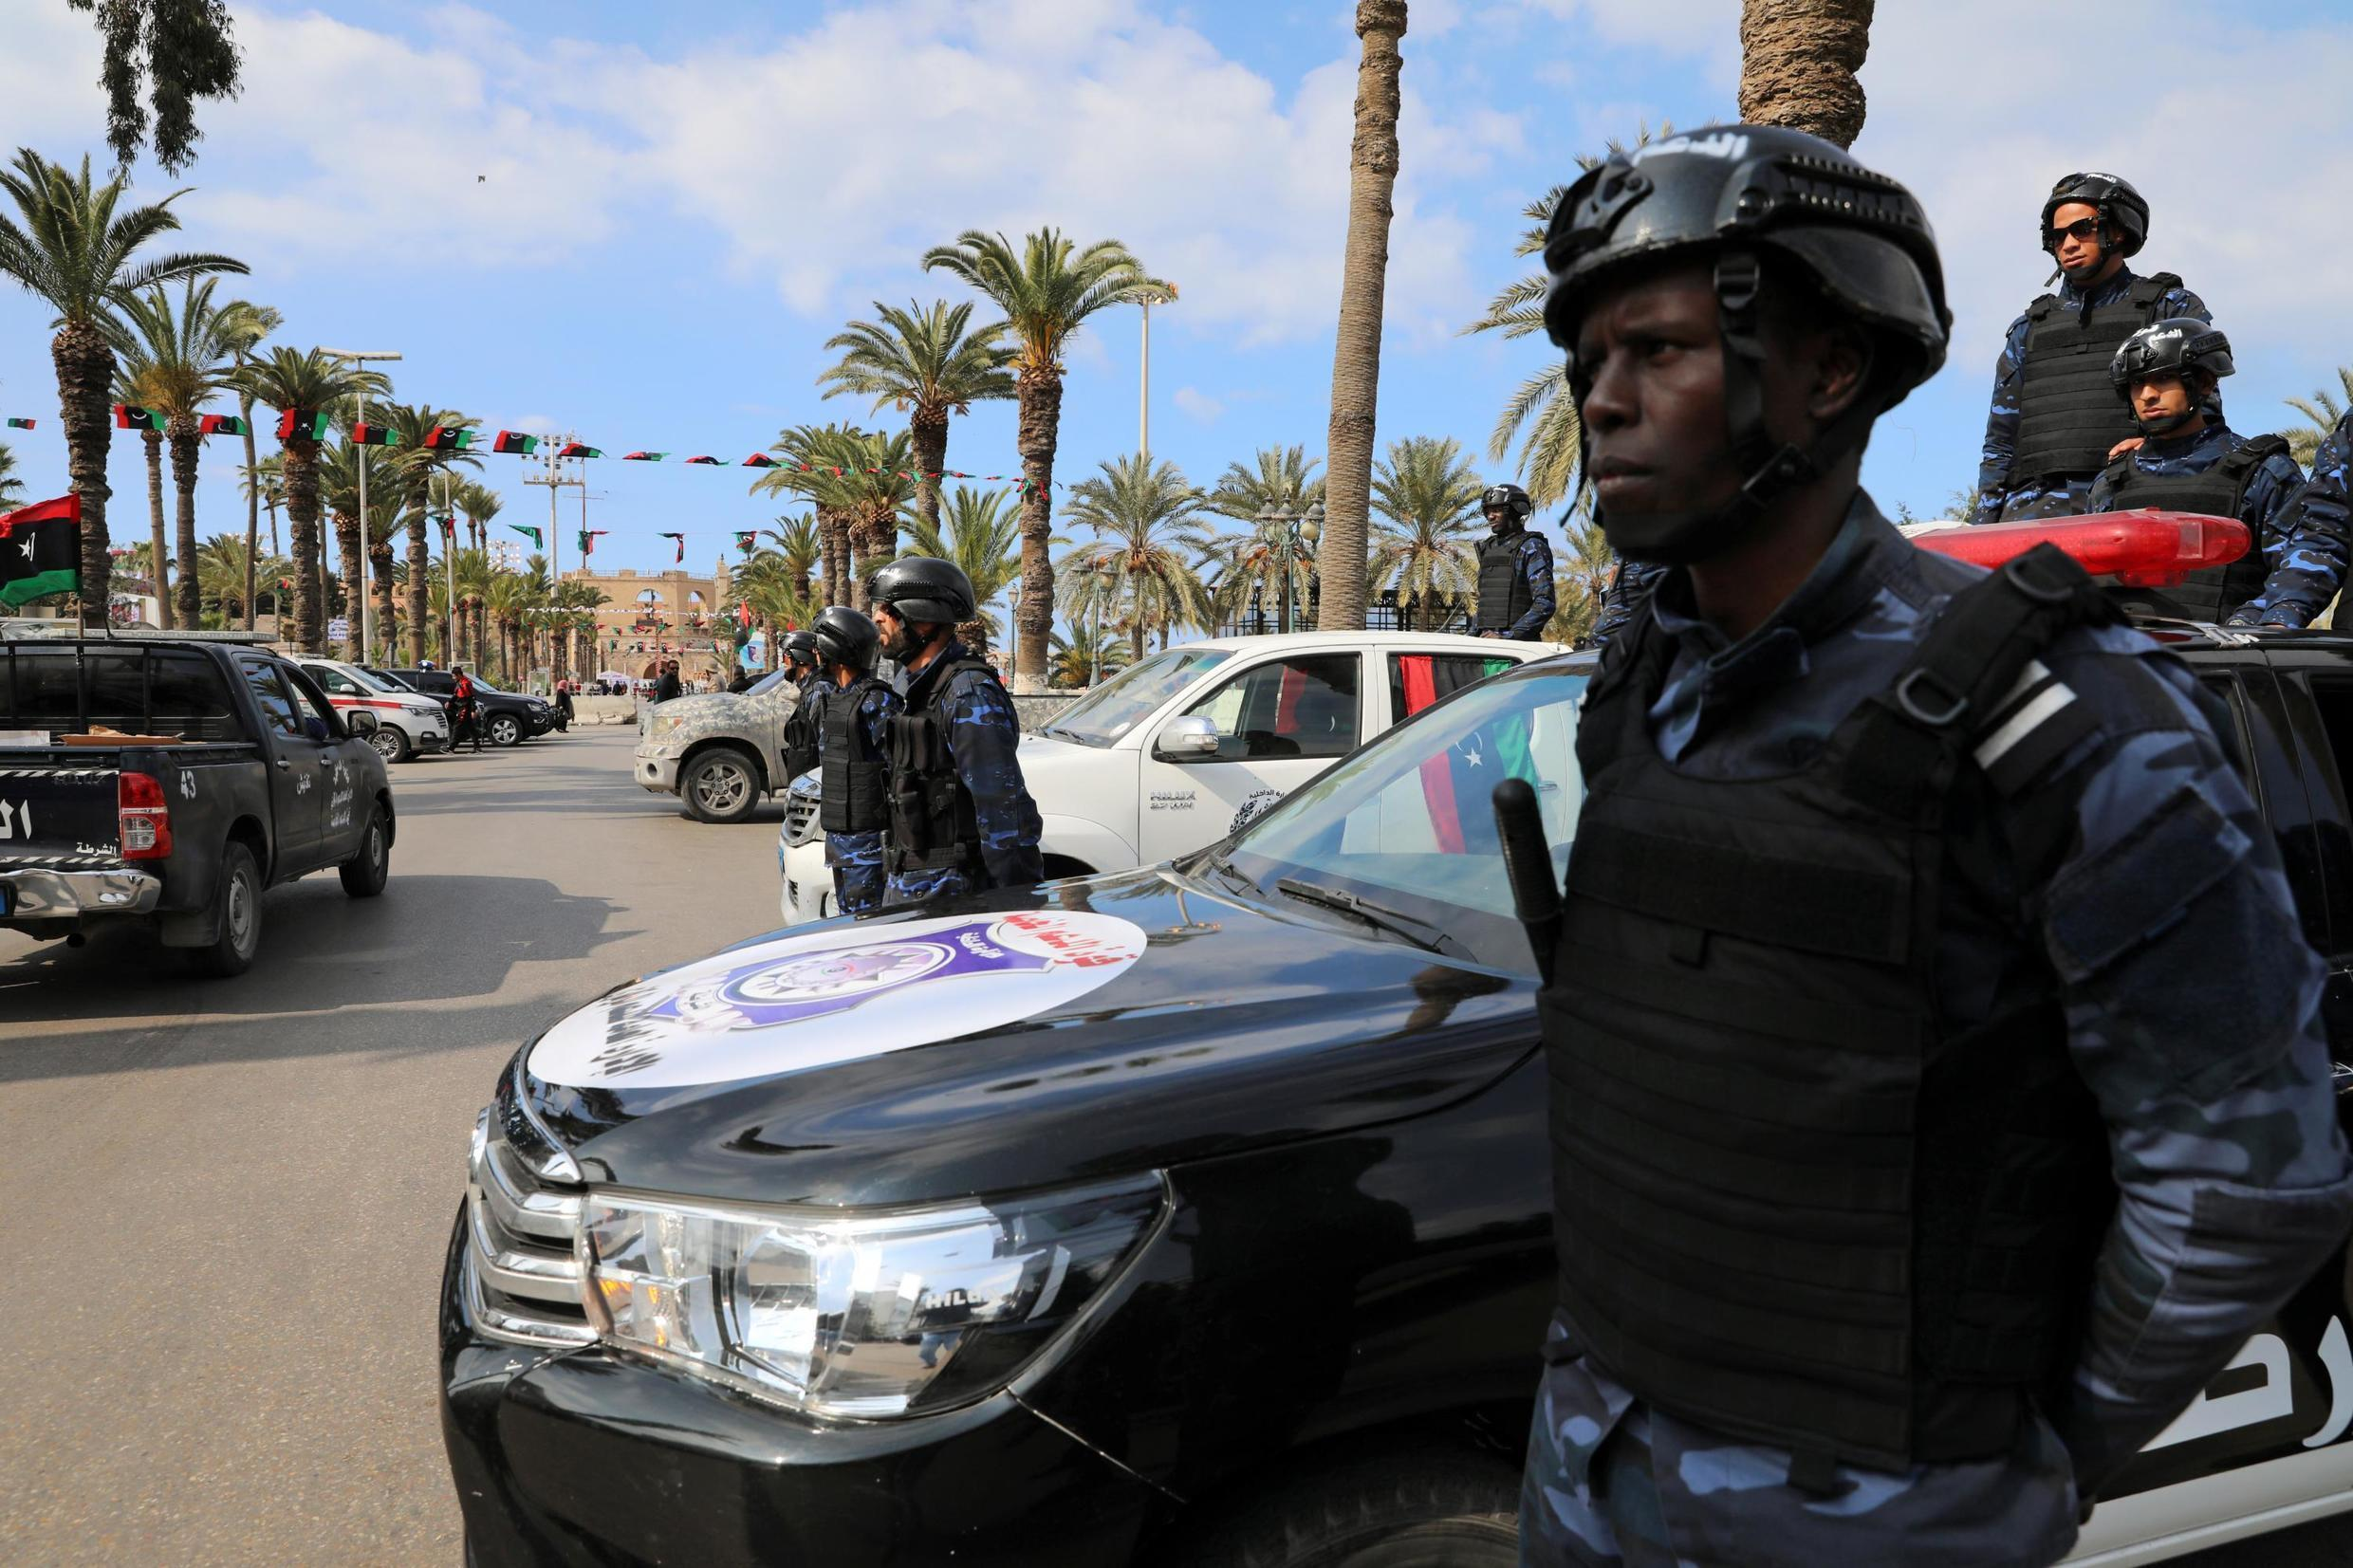 Security forces stand guard during a celebration of the 9th anniversary of the revolution against former Libyan leader Muammar Gaddafi at Martyrs' Square in Tripoli, Libya February 17, 2020